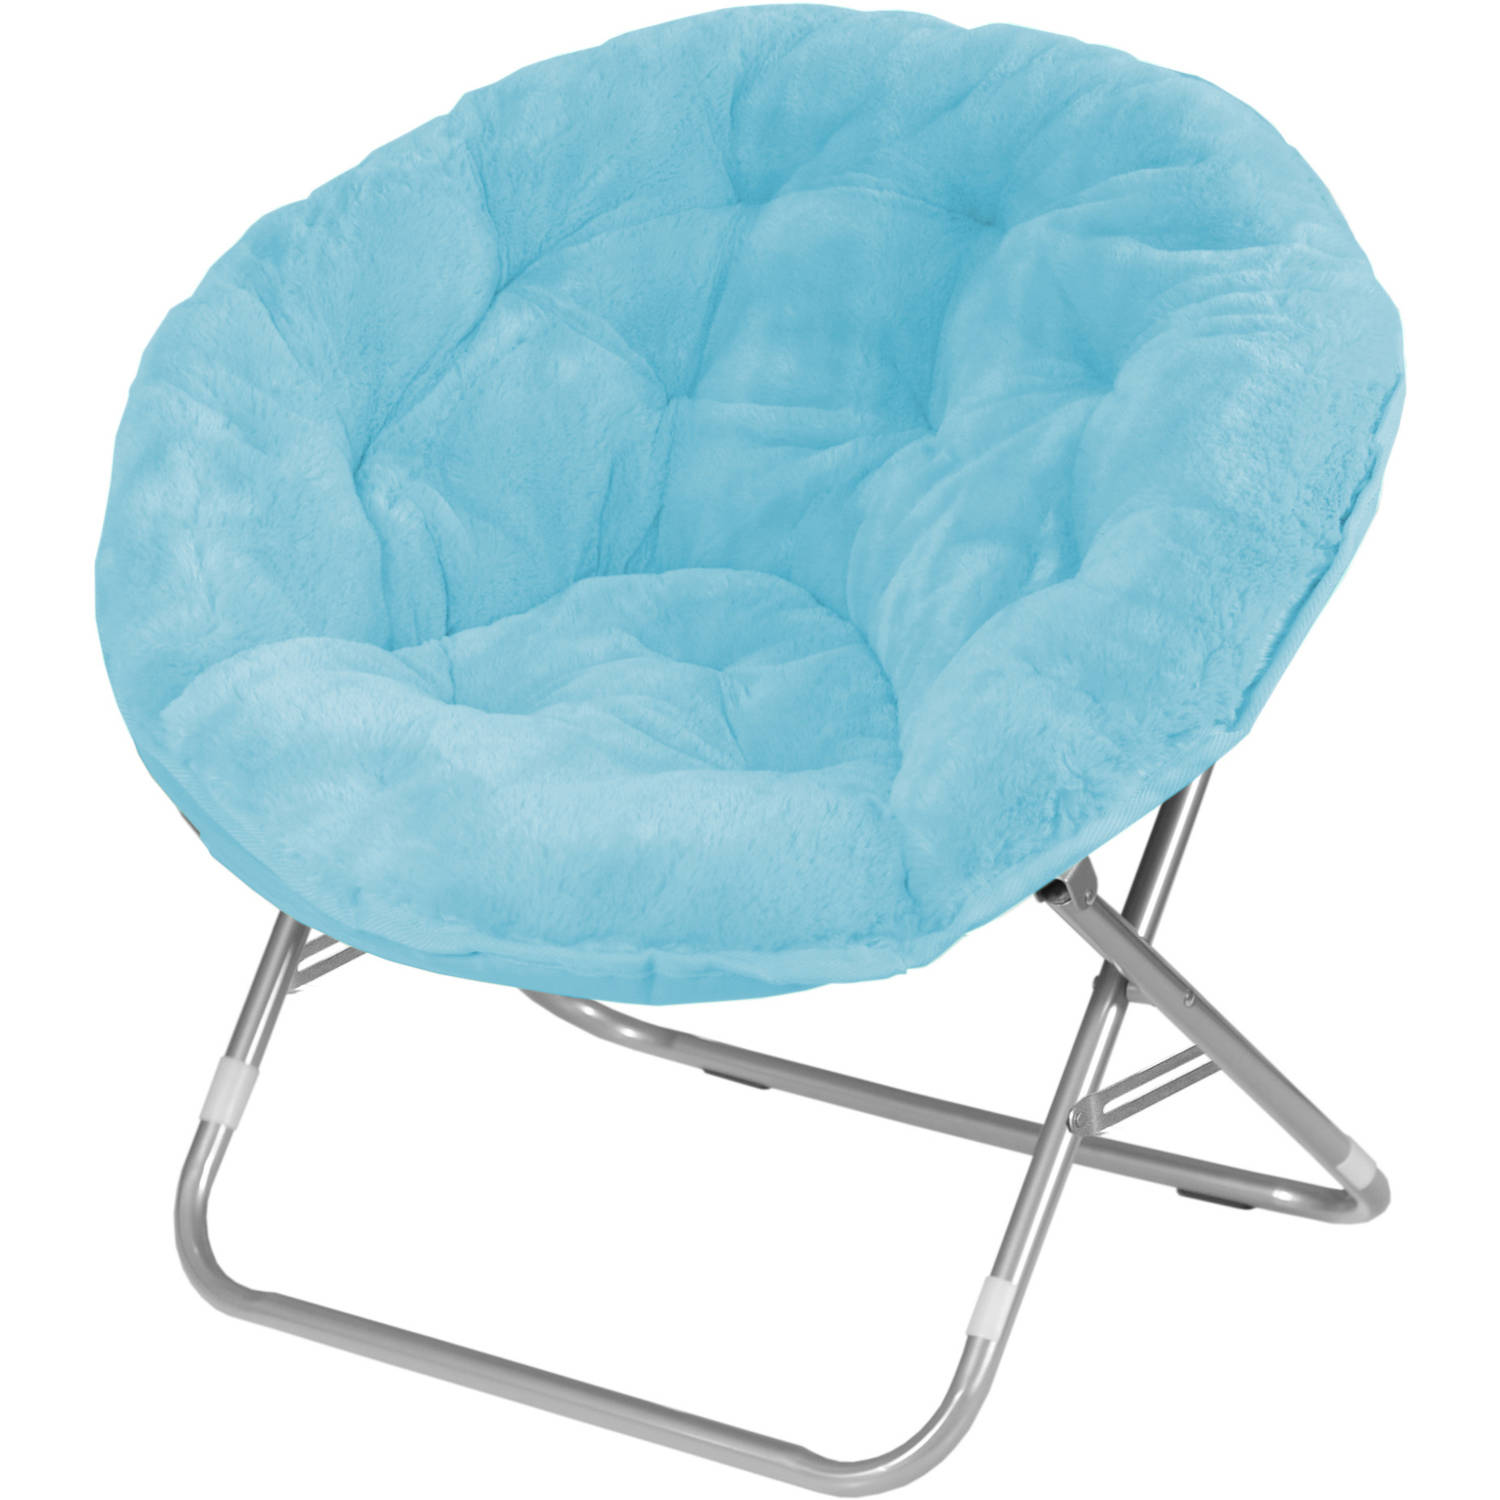 Dorm Room Chairs Faux Fur Saucer Moon Chair Dorm Room Lounging Furniture